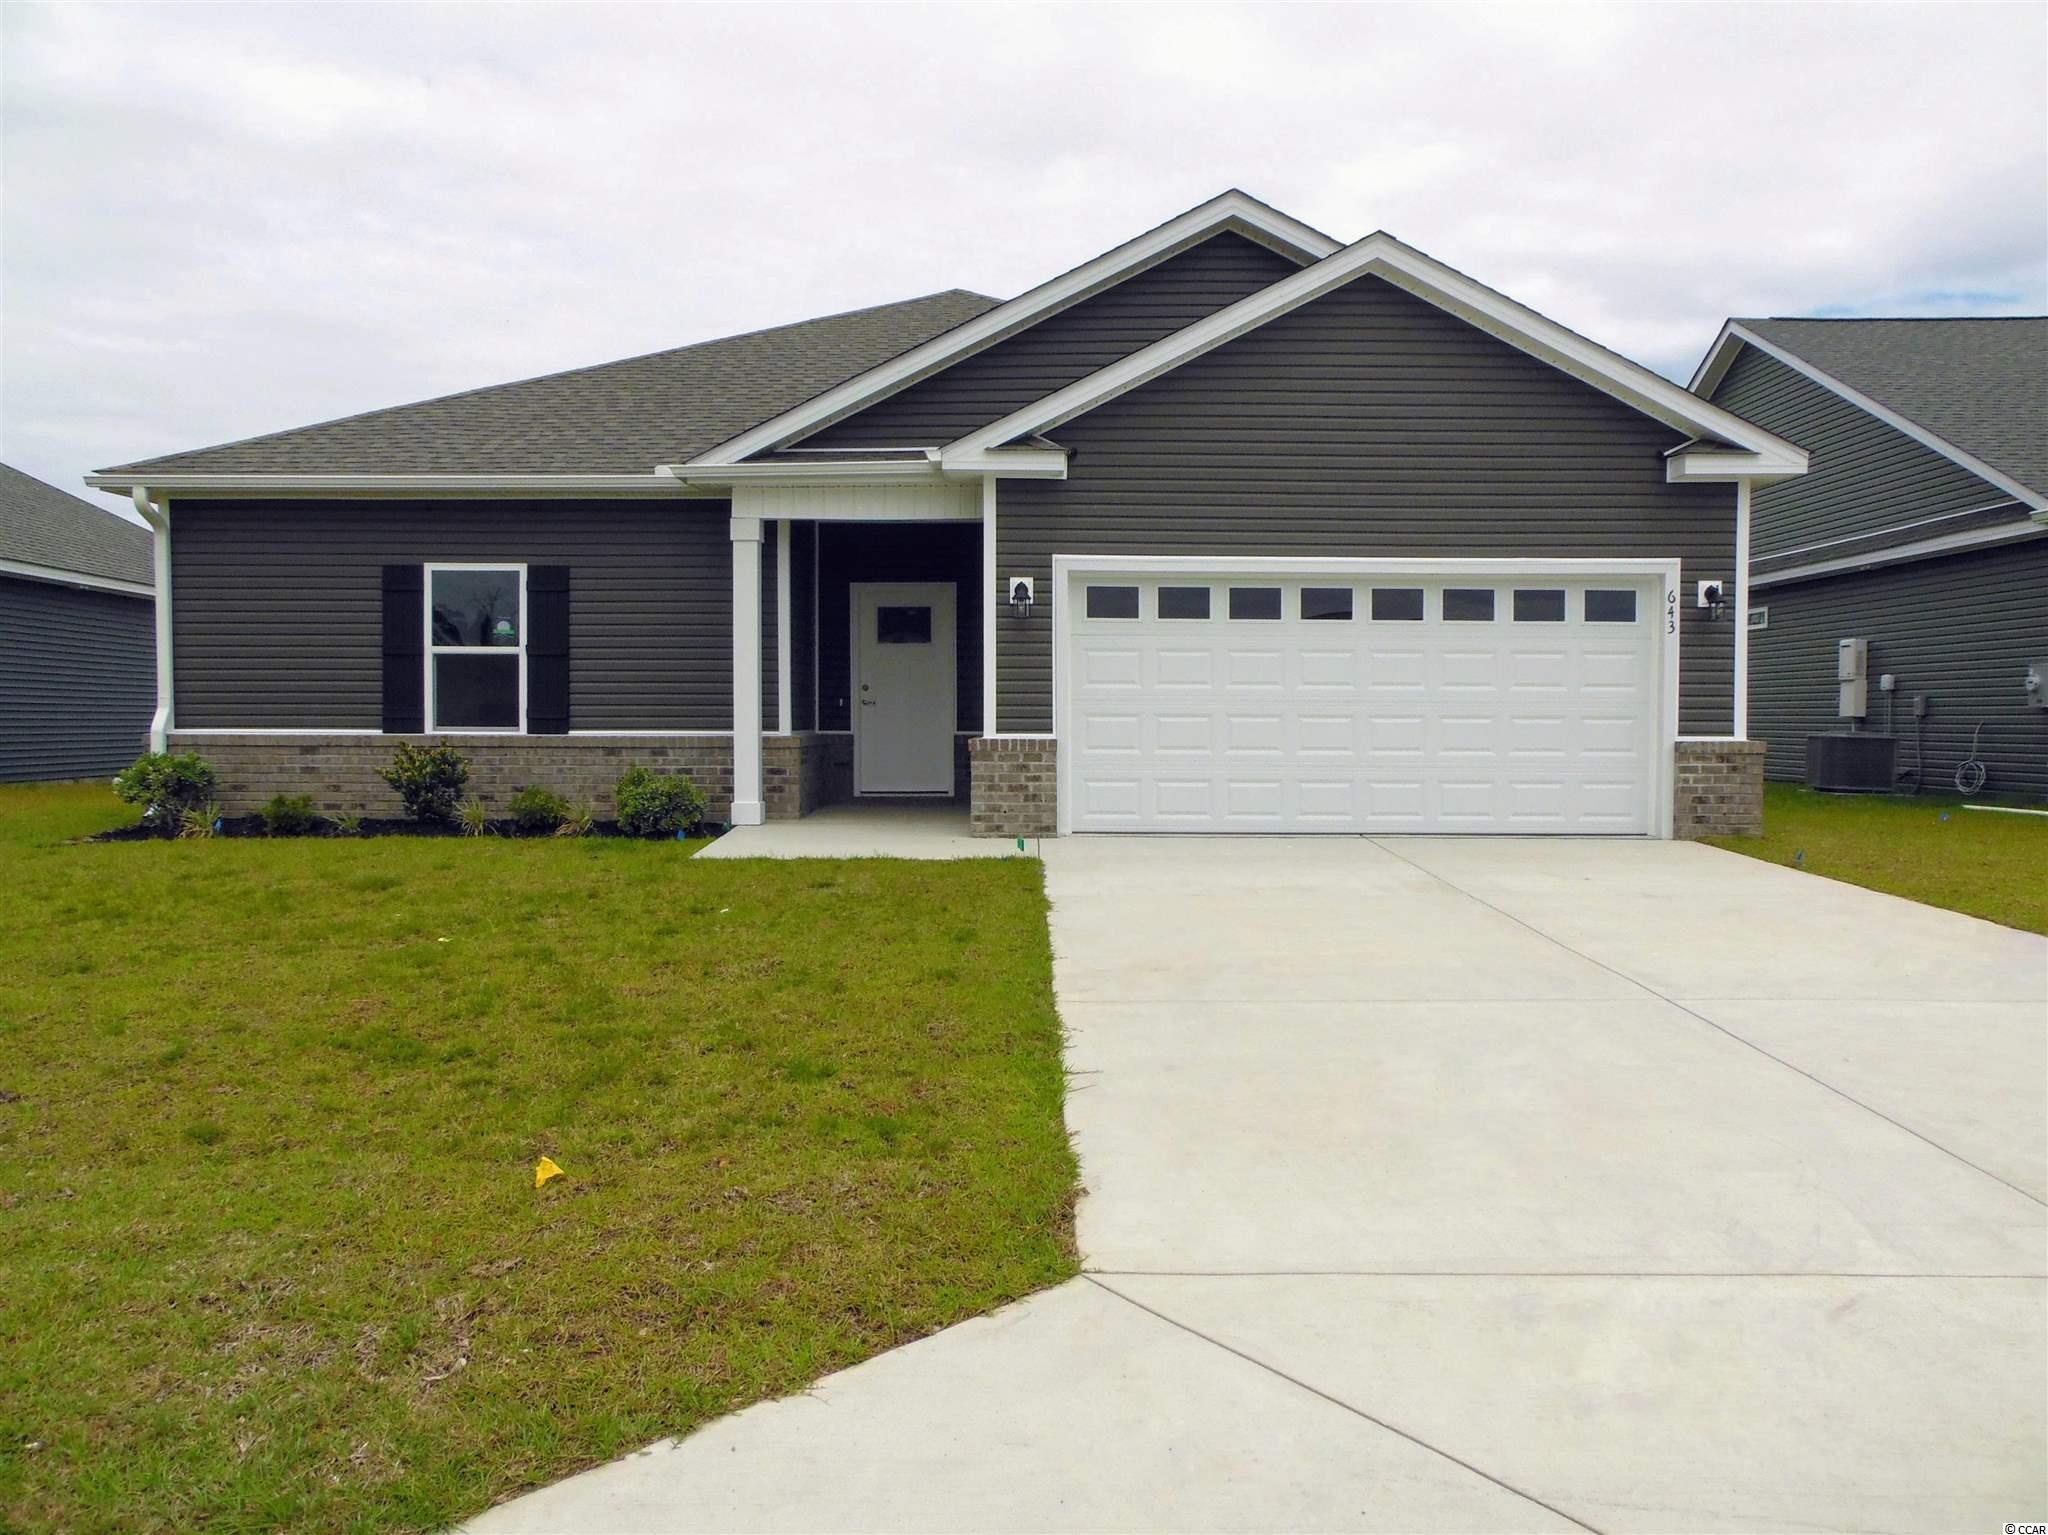 Don't miss out on this New Construction pond view home in The Reserve @ Heritage Downs. This 3 Bedroom 2 bath includes a shiplap wall with a gas fireplace in the Great room/Living room. The kitchen comes with stainless steel appliances (Stove, Microwave, and Dishwasher) upgraded soft close cabinets with granite countertops, a gas range, large work island with a breakfast bar, and pantry for extra storage. The master suite includes double sink vanities and large walk-in closet. Each bedroom includes a ceiling fan and plenty of closet space. Other features include 9' ceilings on the first floor, an optional gas HVAC system, tankless gas water heater, WIFI thermostat, and much more. This house comes with a 12' x 24' POOL Yes! You have a pool in your very own back yard.  Stop by the model home for more information and ask about the new community and other model homes, upgrades. Conveniently located to some of the finest dining, shopping, golf, beaches, schools, hospitals, and downtown Conway, Myrtle Beach, and North Myrtle Beach. **Some of The photos are not of the house, the house is currently under construction. GPS Long Leaf Drive - we will be the neighborhood on the left